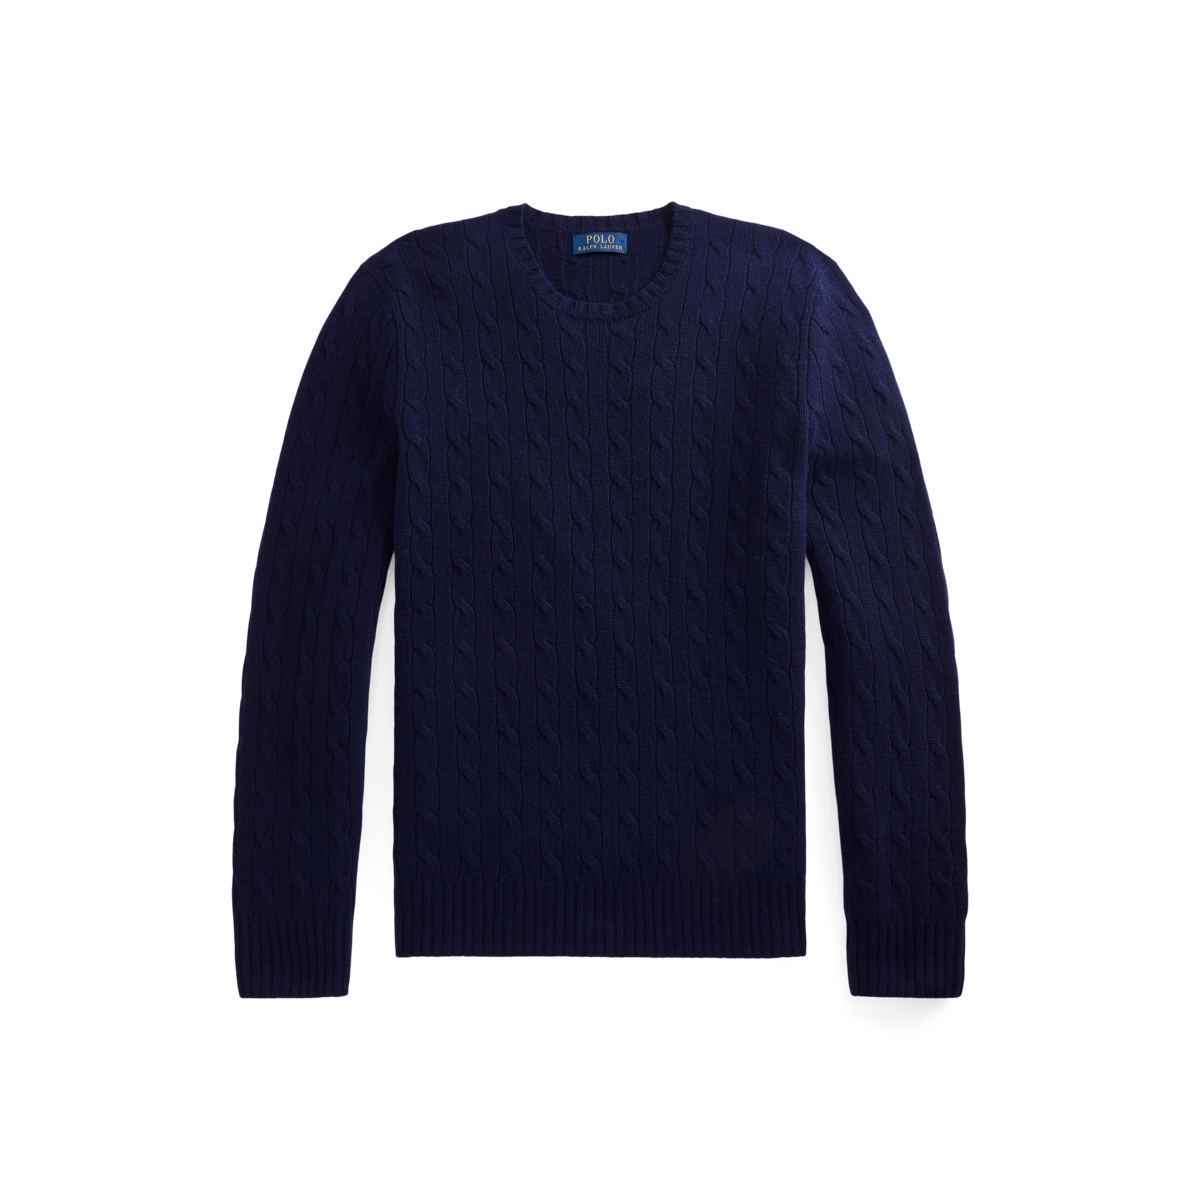 89a1b298a Cable-Knit Cashmere Sweater